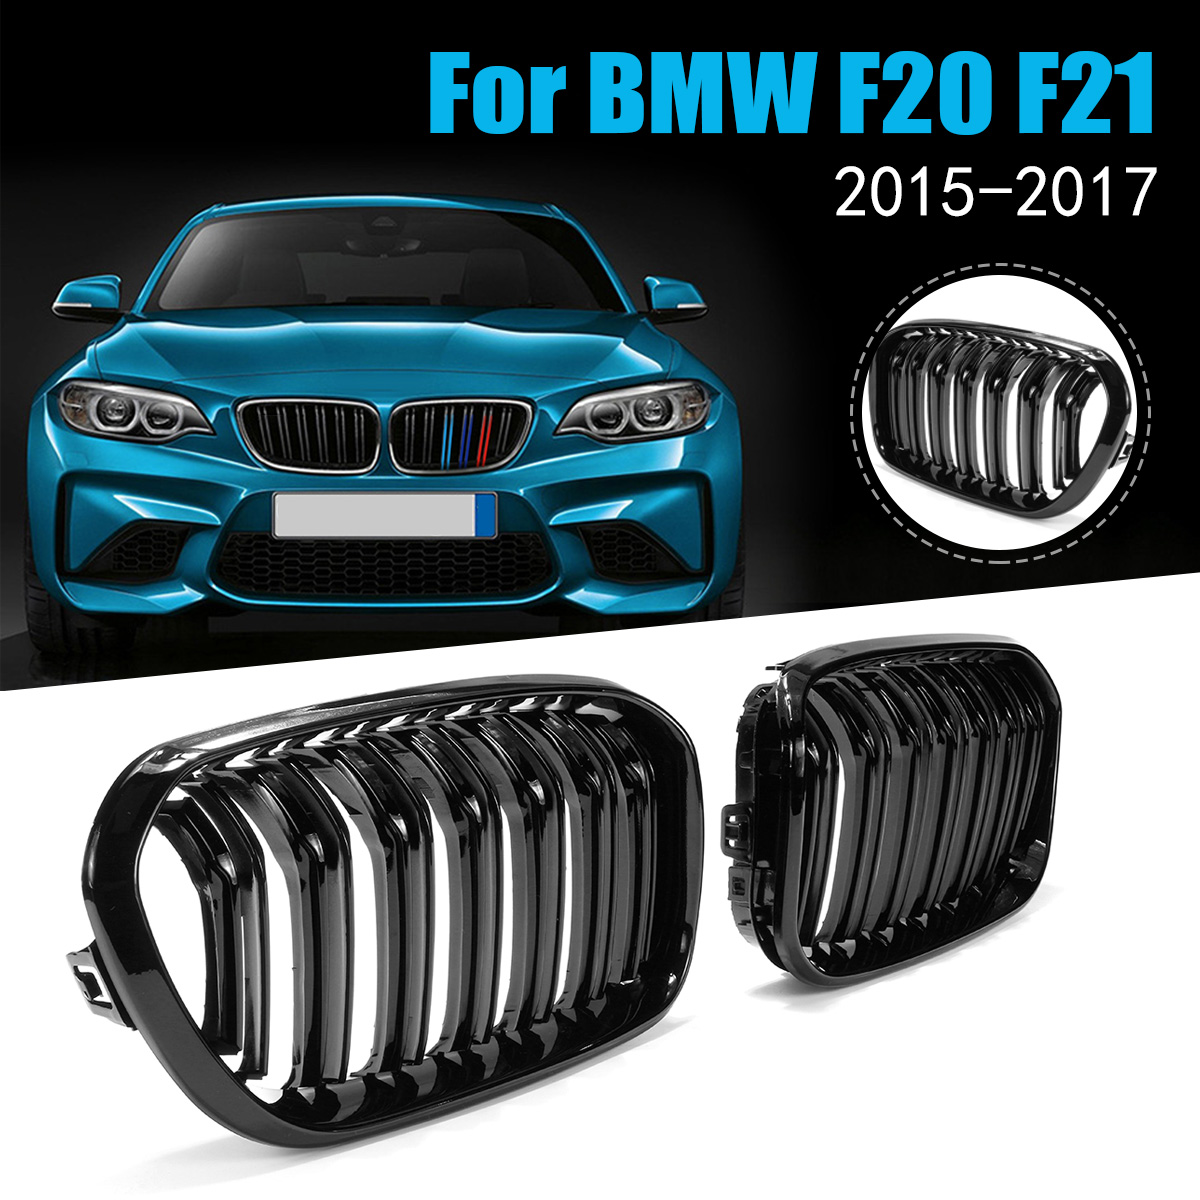 Pair Gloss Matt Black Double Slat Line M Color Front Kidney Grill Grille Car Styling Racing Grill For BMW F20 F21 1 Series 15-16 pair gloss matt black m color 2 line front kidney grille grill double slat for bmw e90 e91 3 series 2004 2005 2006 2007